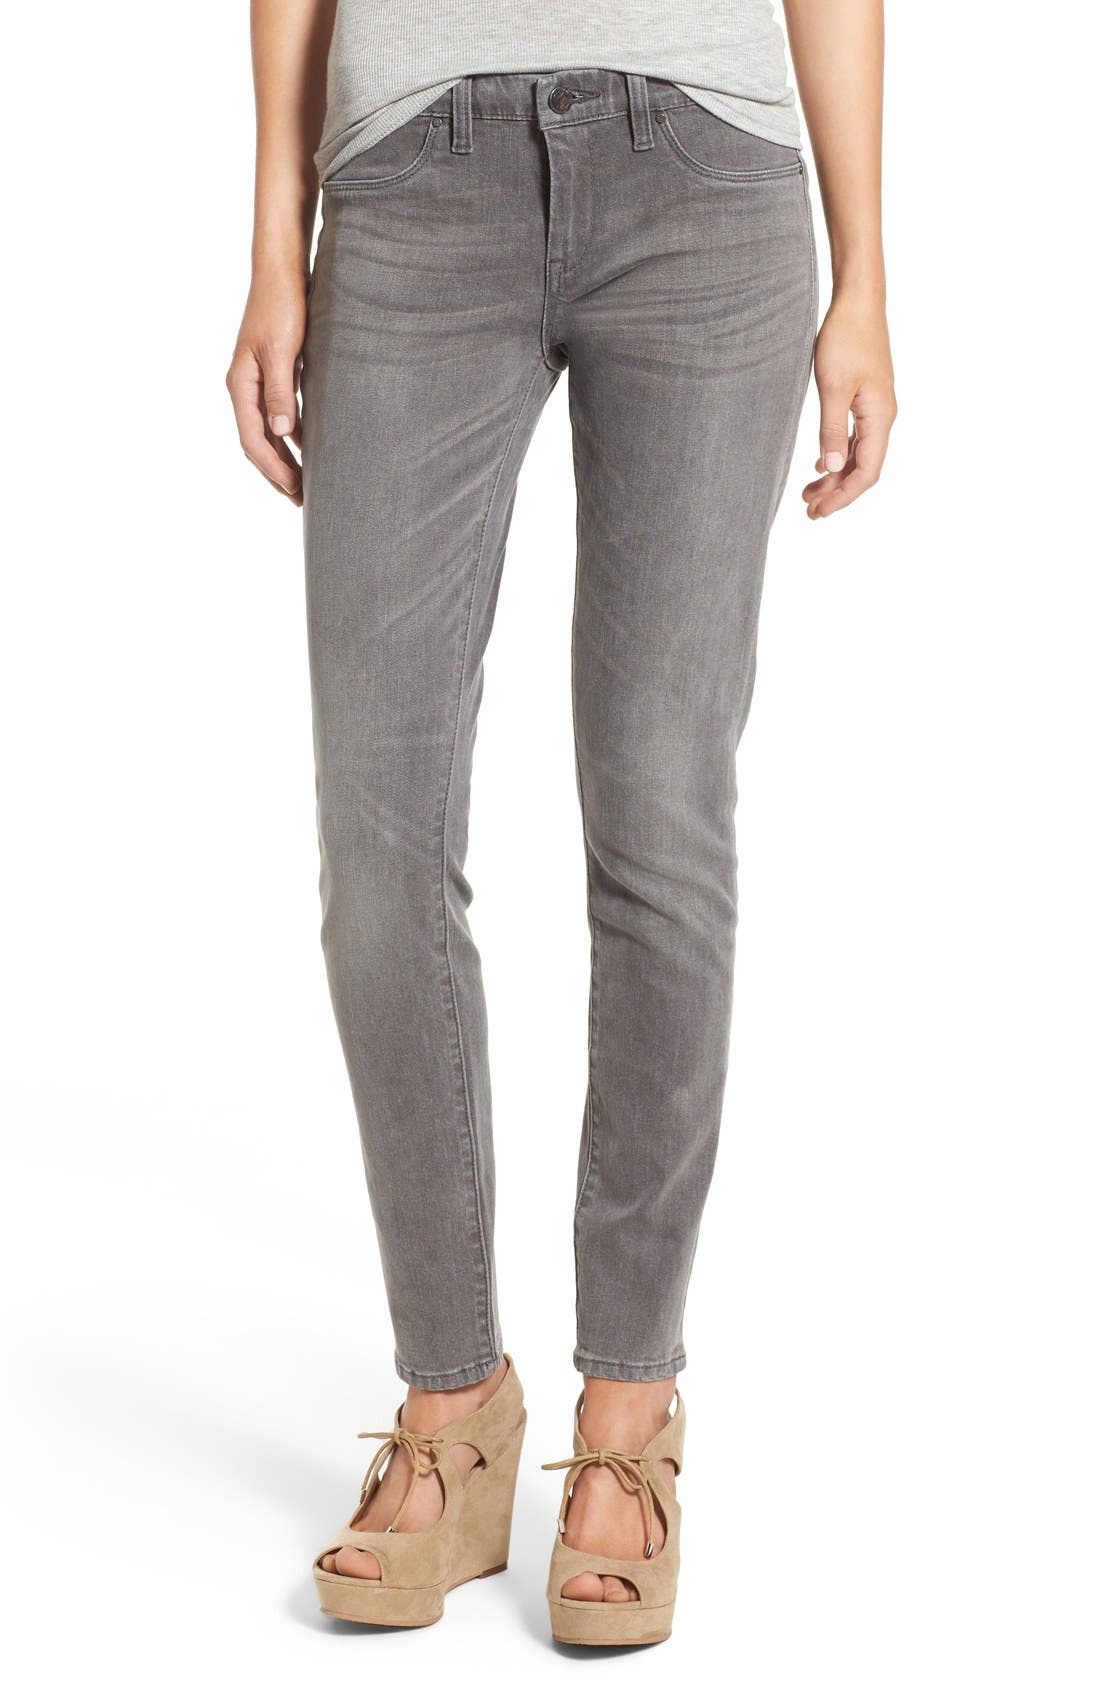 Alternate Image 1 Selected - BLANKNYC Skinny Jeans (Fifty Shades)